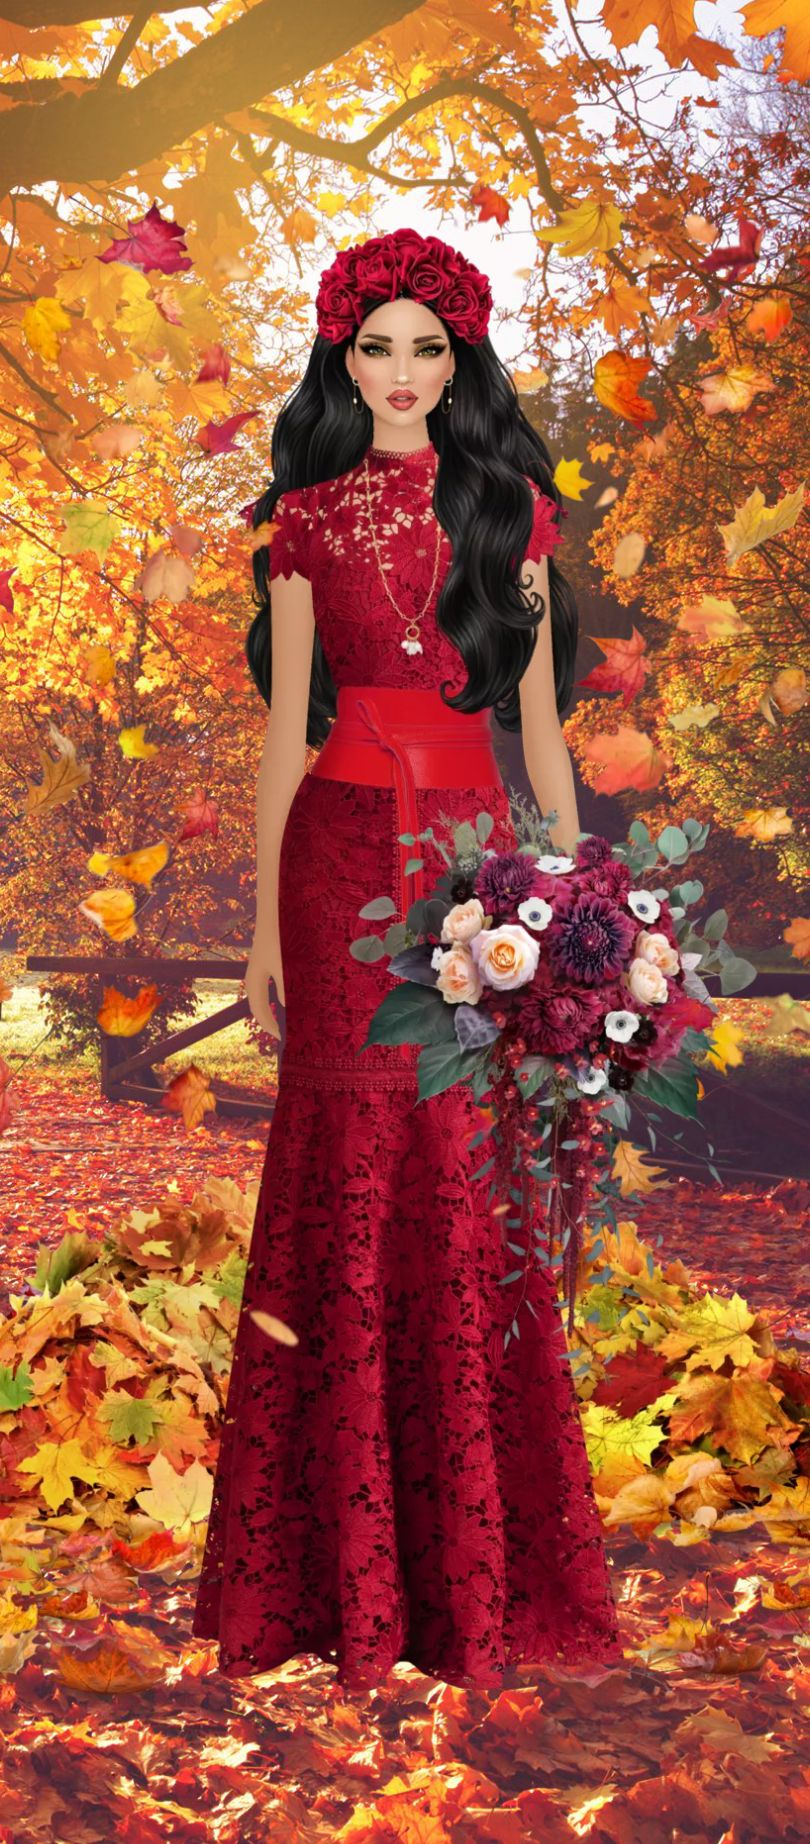 Pin By Felice Navidad On Fantasy Story In 2020 Red Dress Bride Dresses